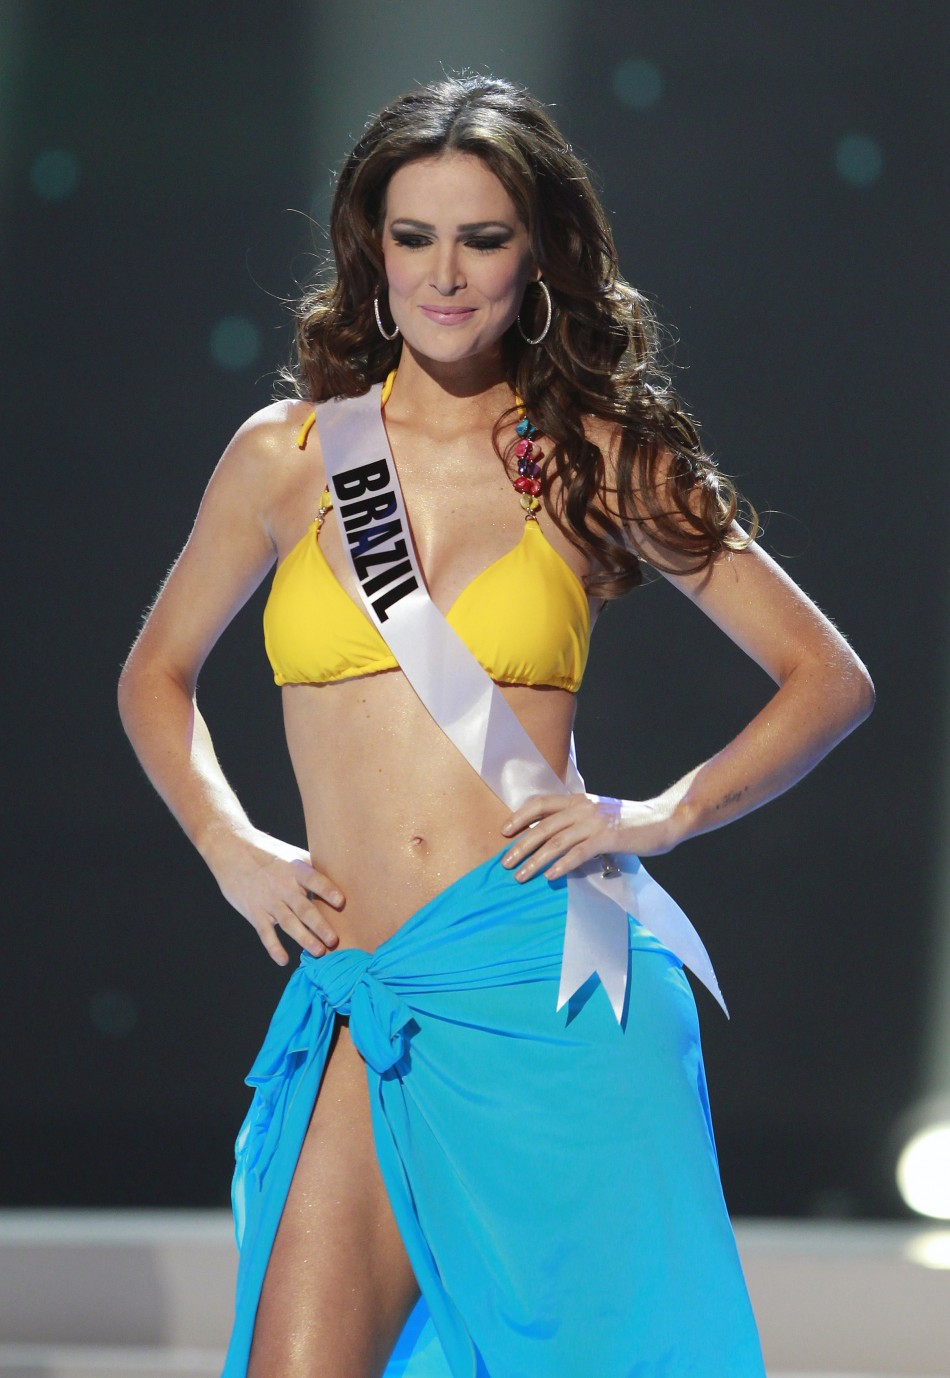 Miss Brazil Priscila Machado steps forward after being chosen among the final ten contestants of the Miss Universe 2011 pageant in Sao Paulo